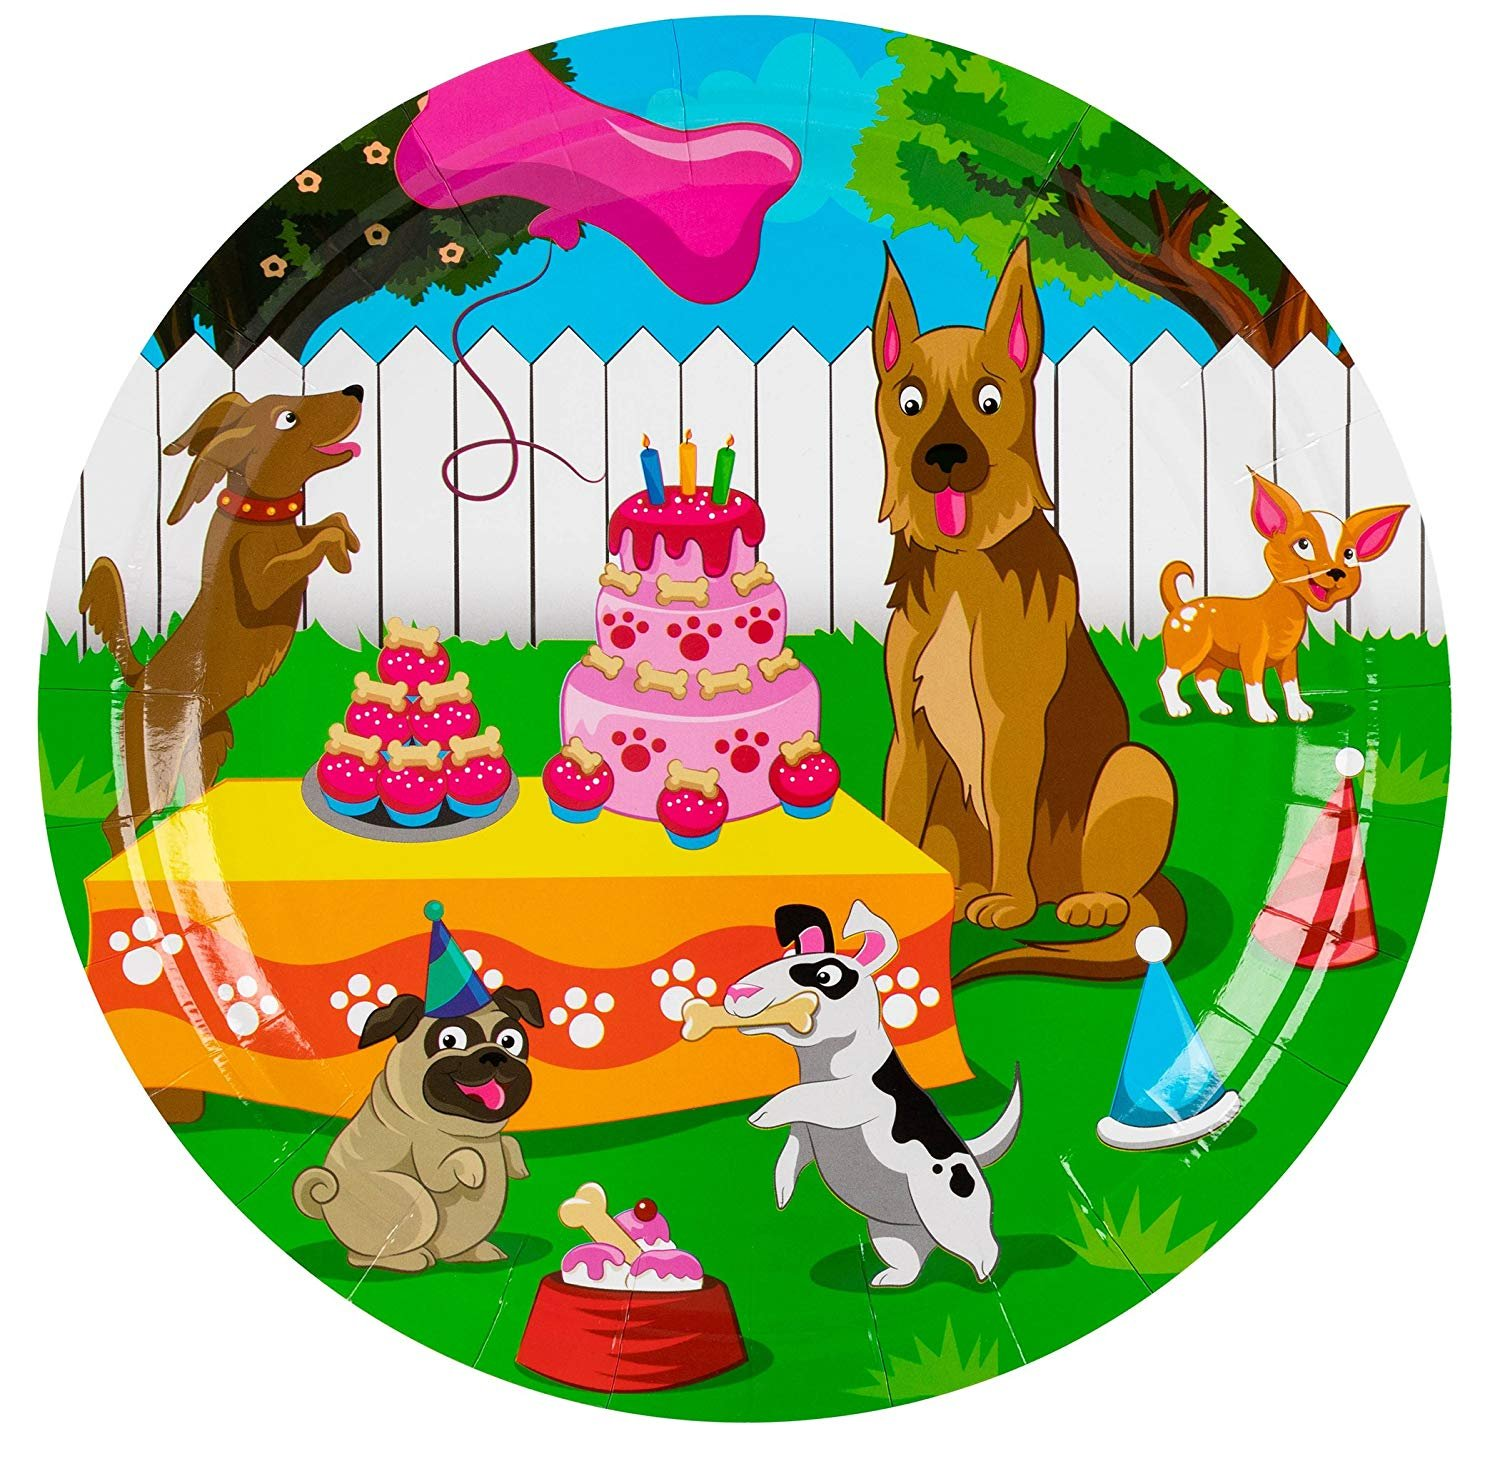 Disposable Plates - 80-Count Paper Plates, Puppy Party Supplies for Appetizer, Lunch, Dinner, and Dessert, Kids Birthdays, 9 x 9 inches by Blue Panda (Image #6)